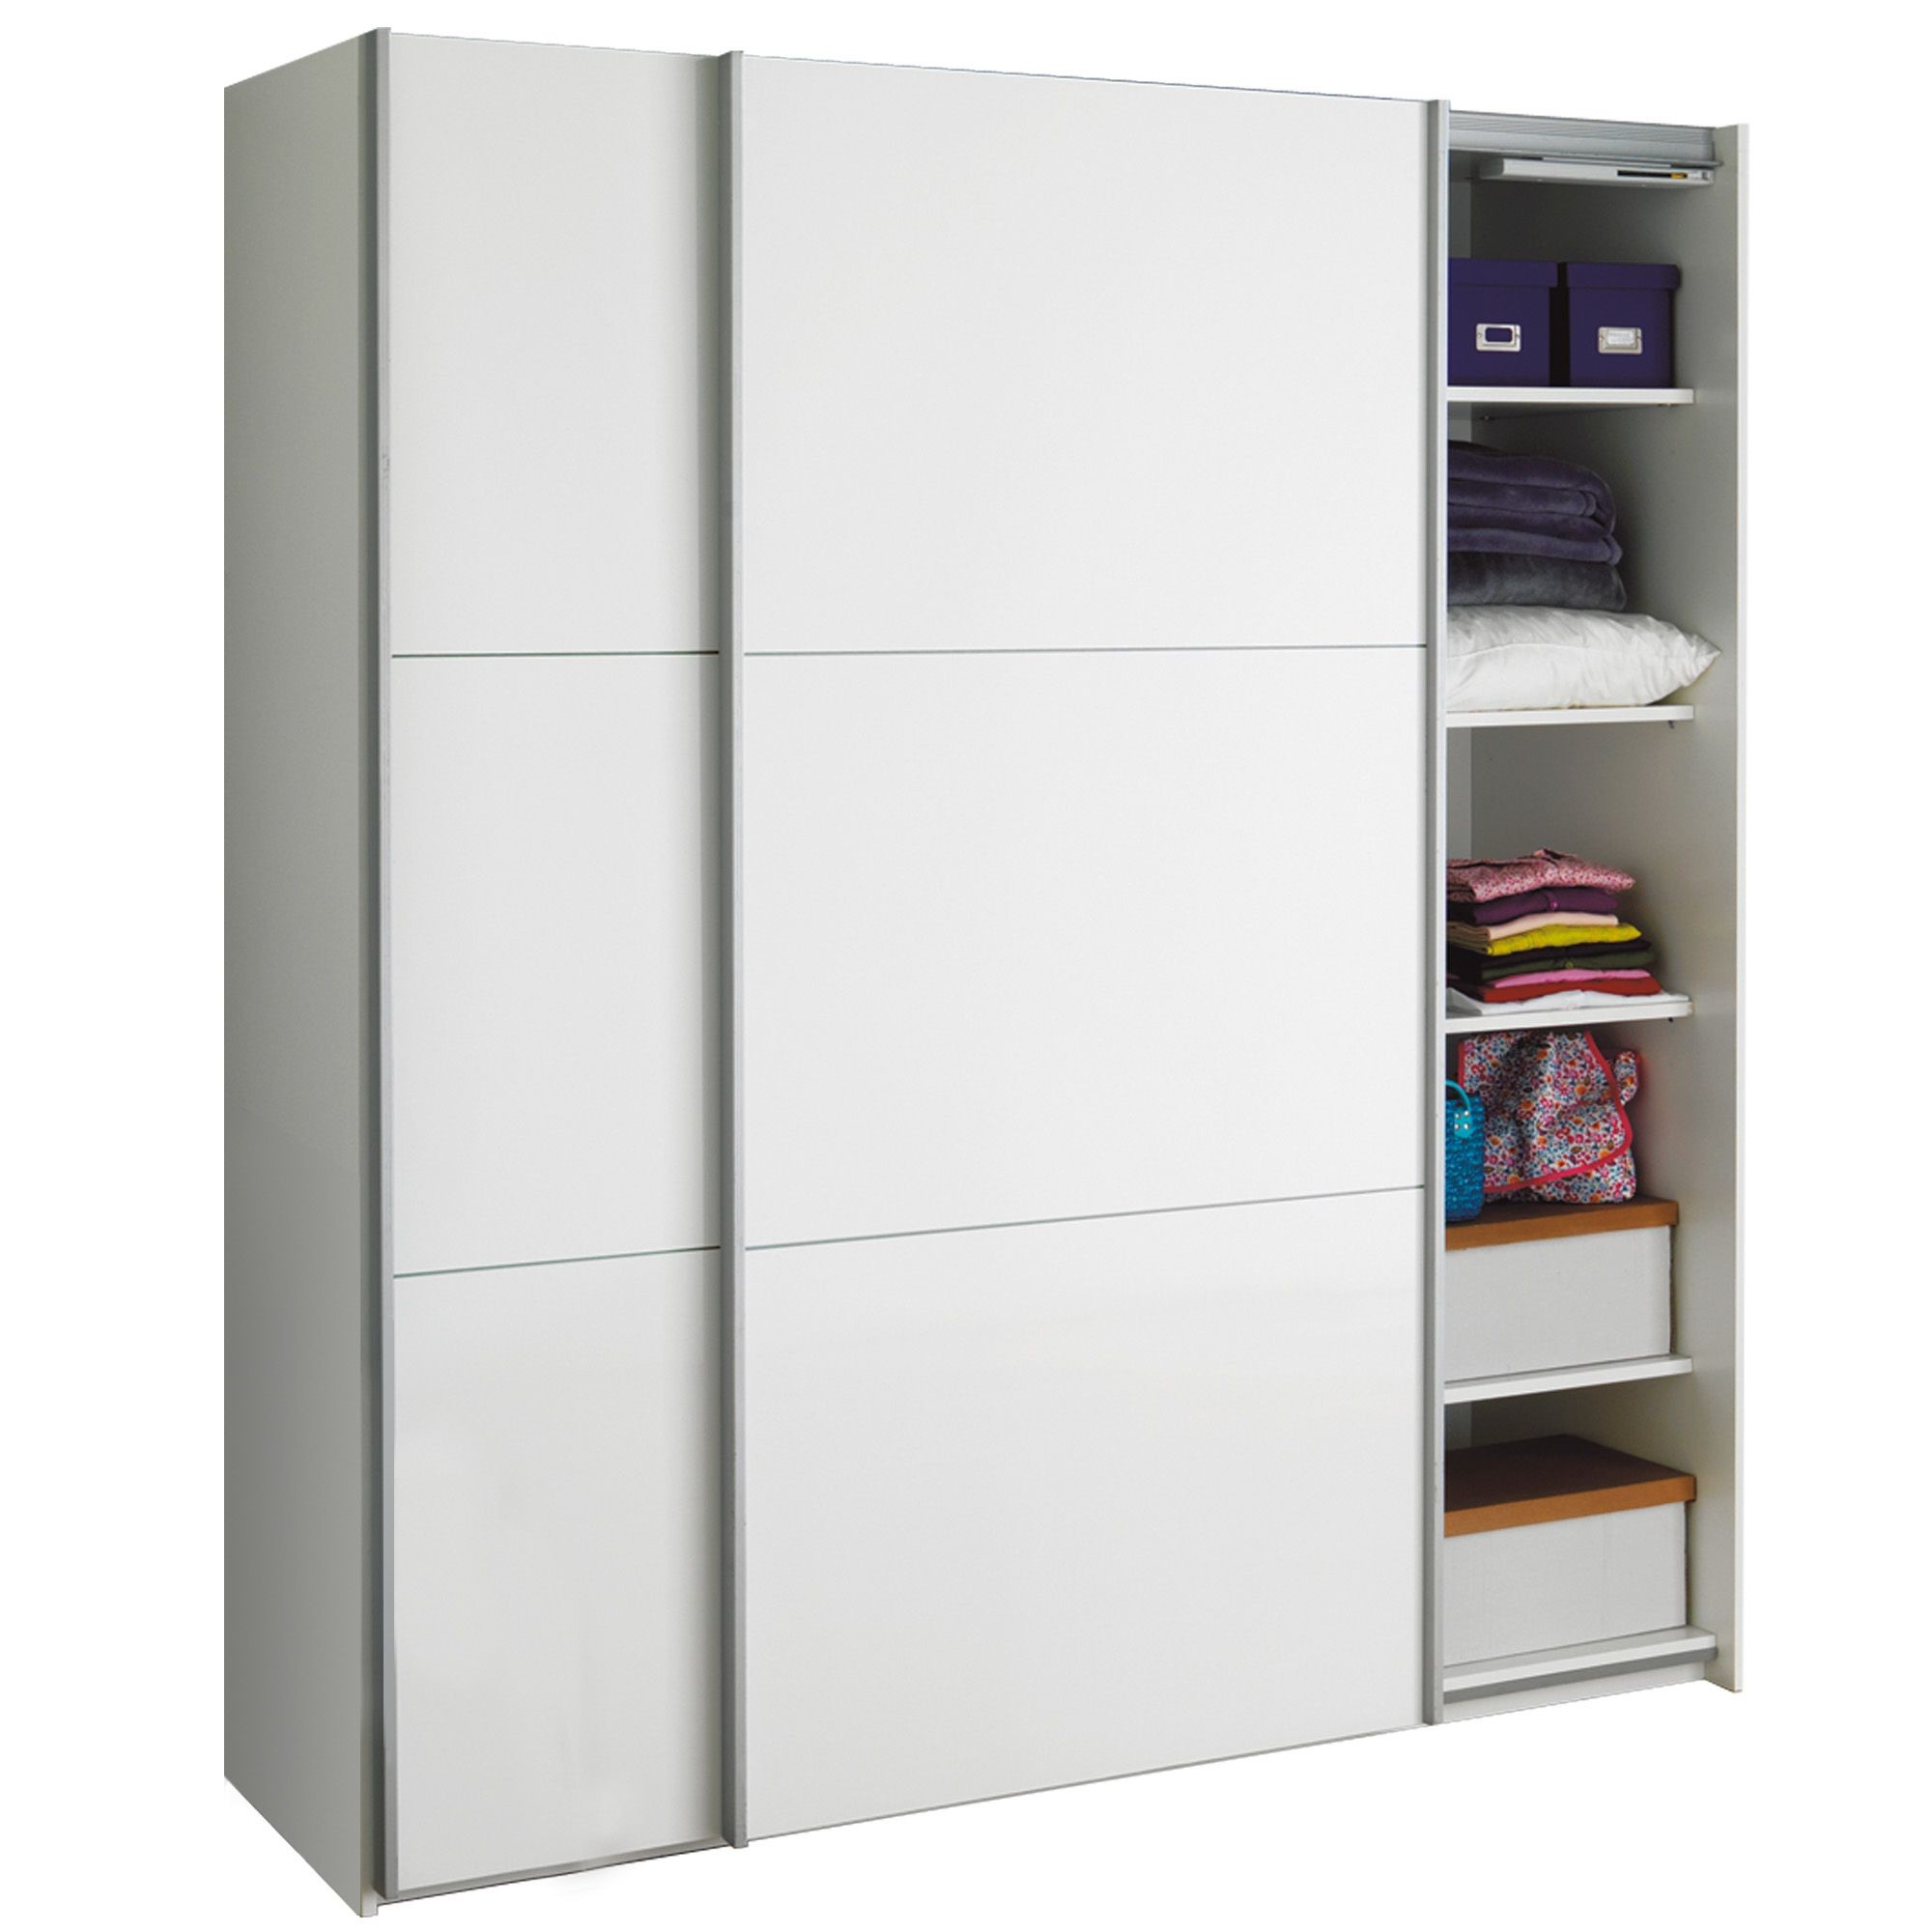 armoire porte coulissante ikea armoire ikea blanche armoire portes pour un style de rangement. Black Bedroom Furniture Sets. Home Design Ideas